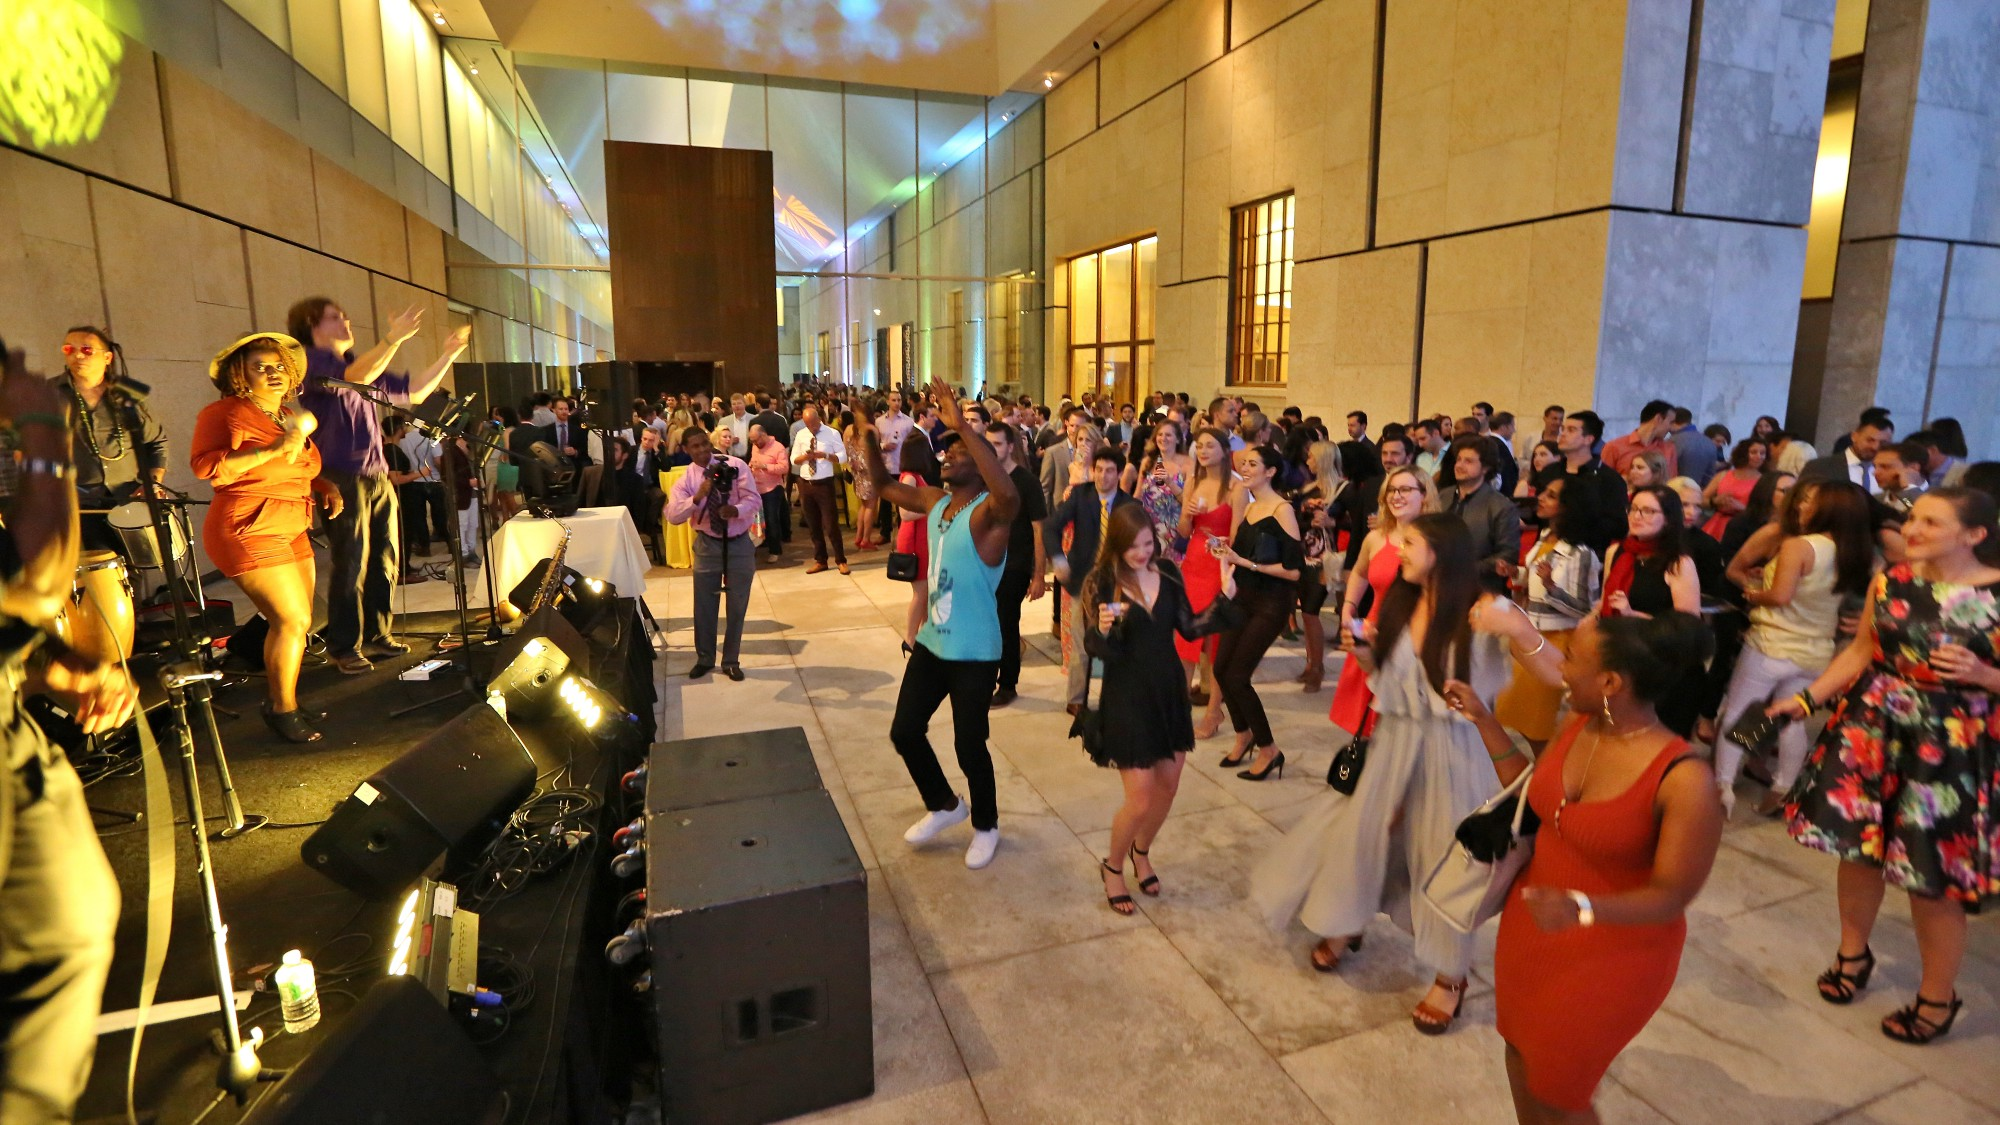 A group of young people are dancing in the atrium of the museum to music from the stage on the left of the image